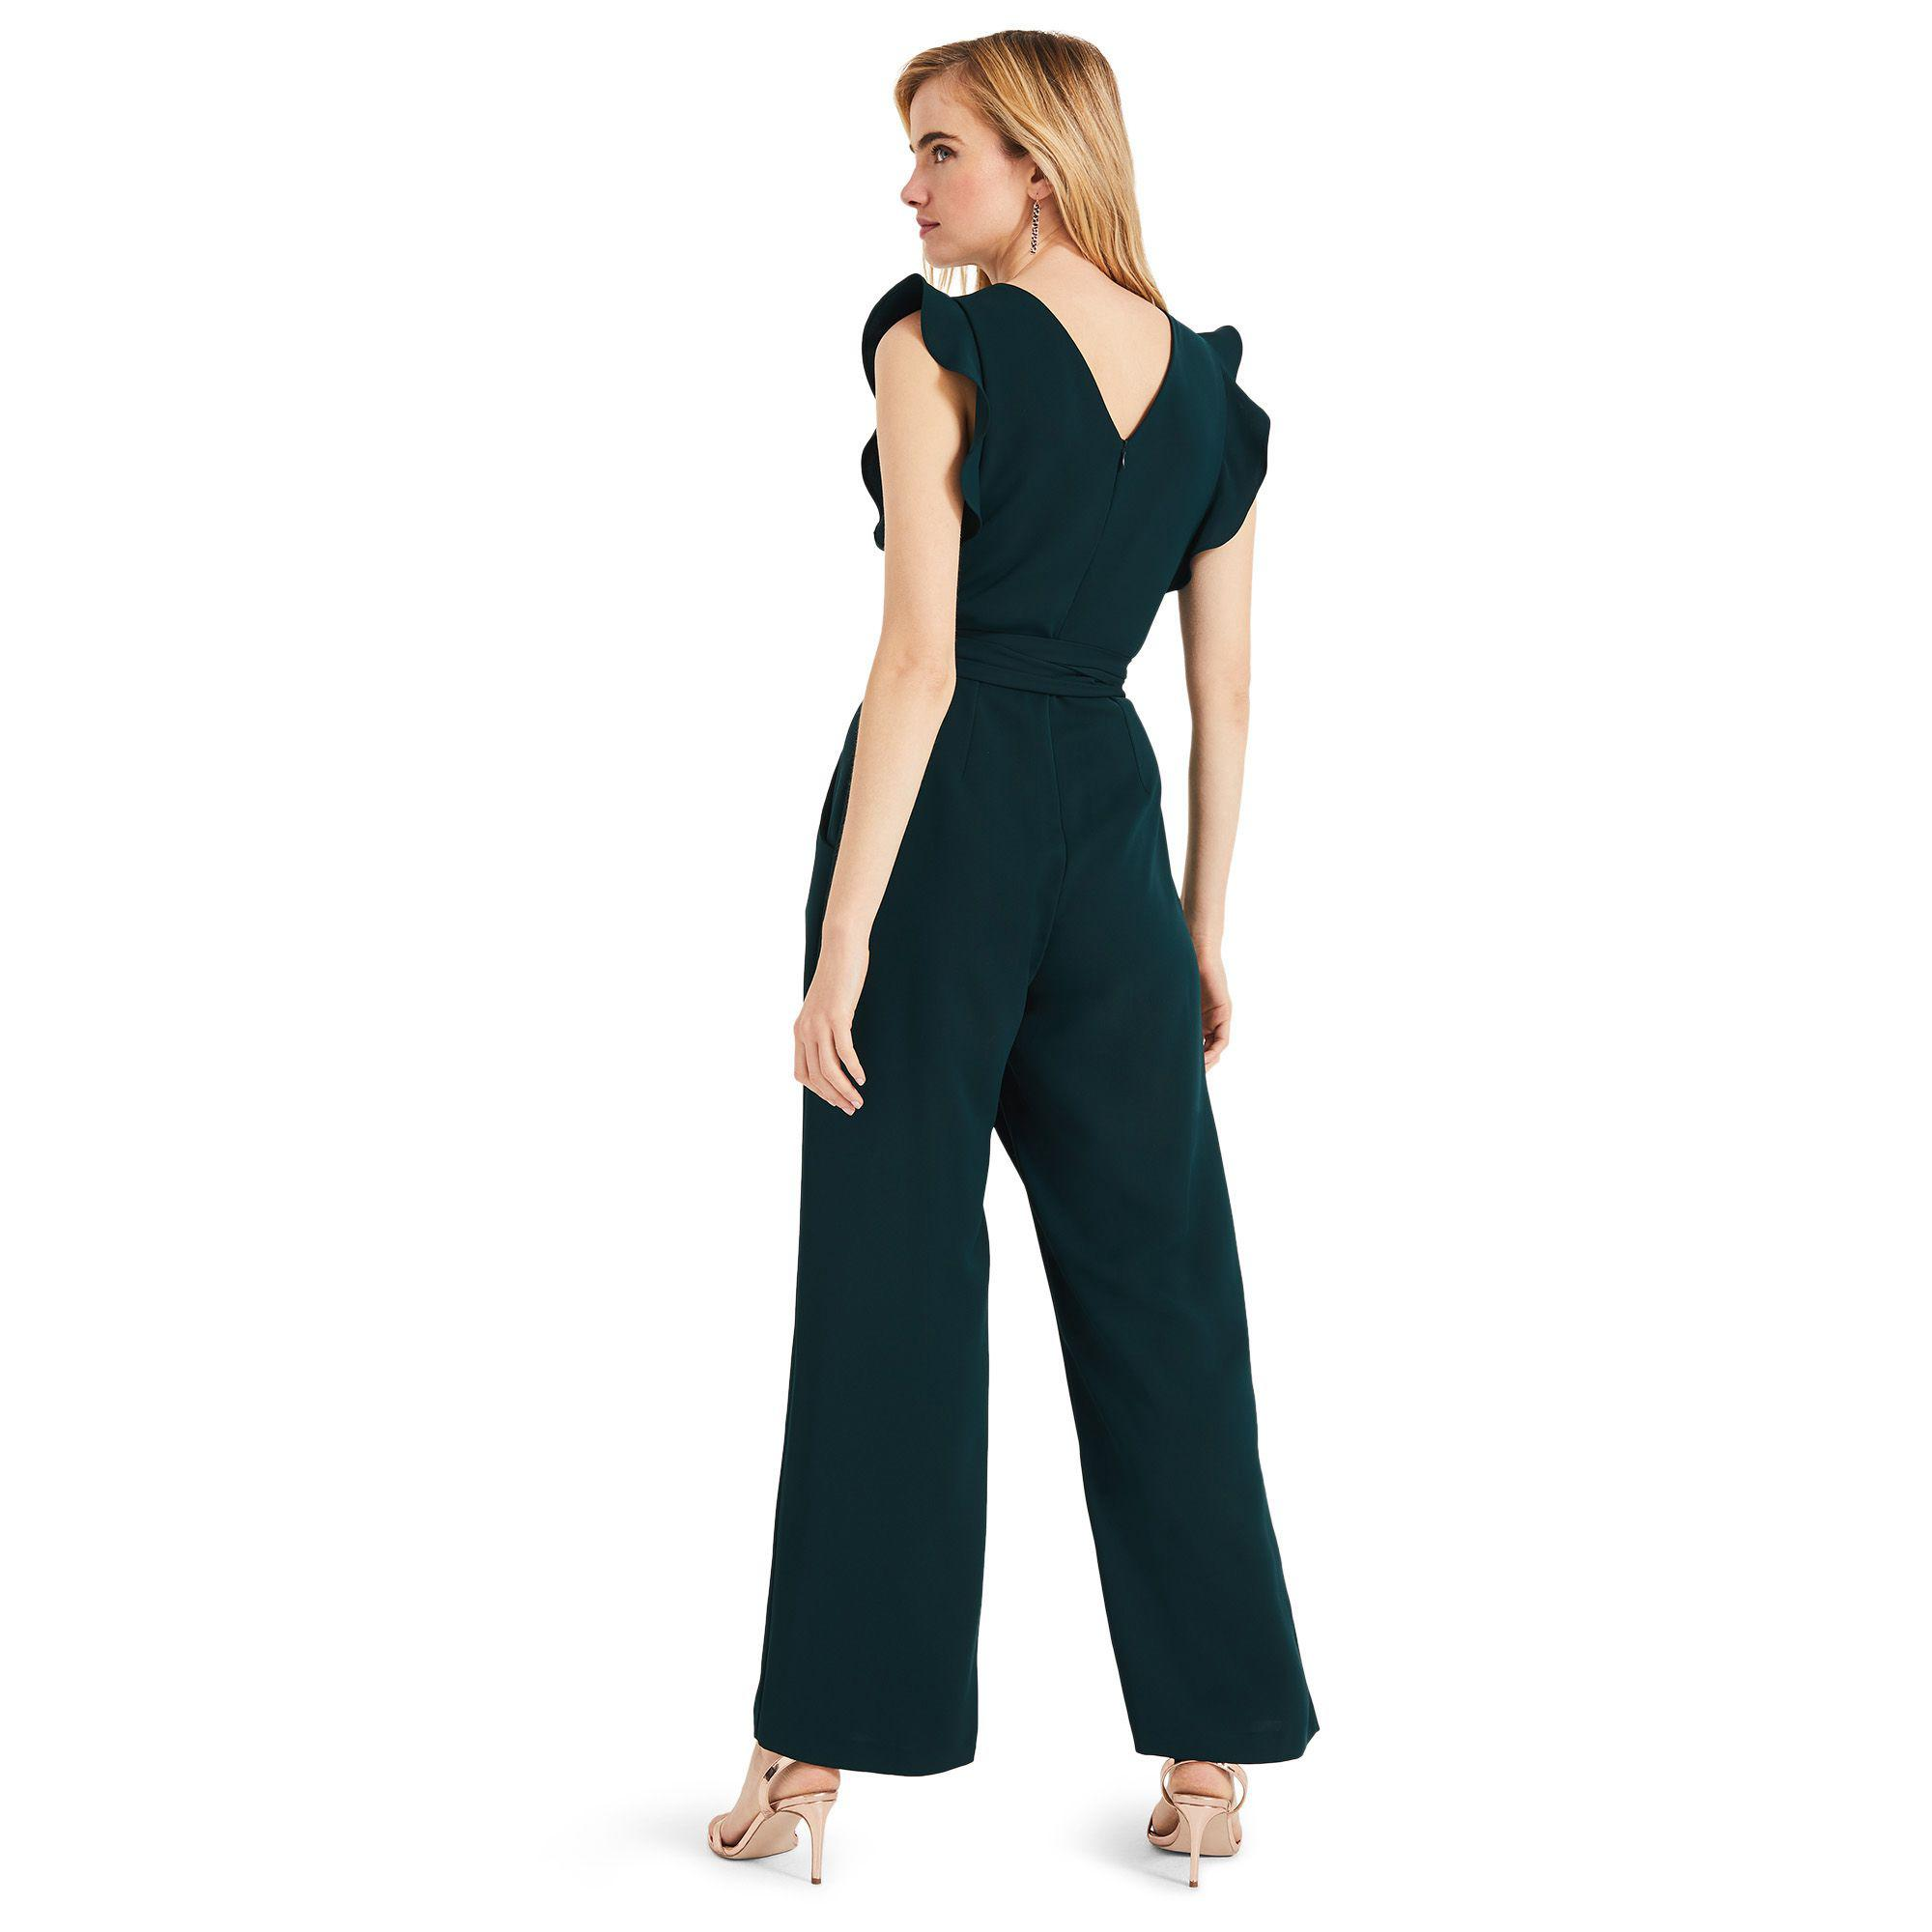 870d96969a3 Phase Eight - Green Victoriana Jumpsuit - Lyst. View fullscreen